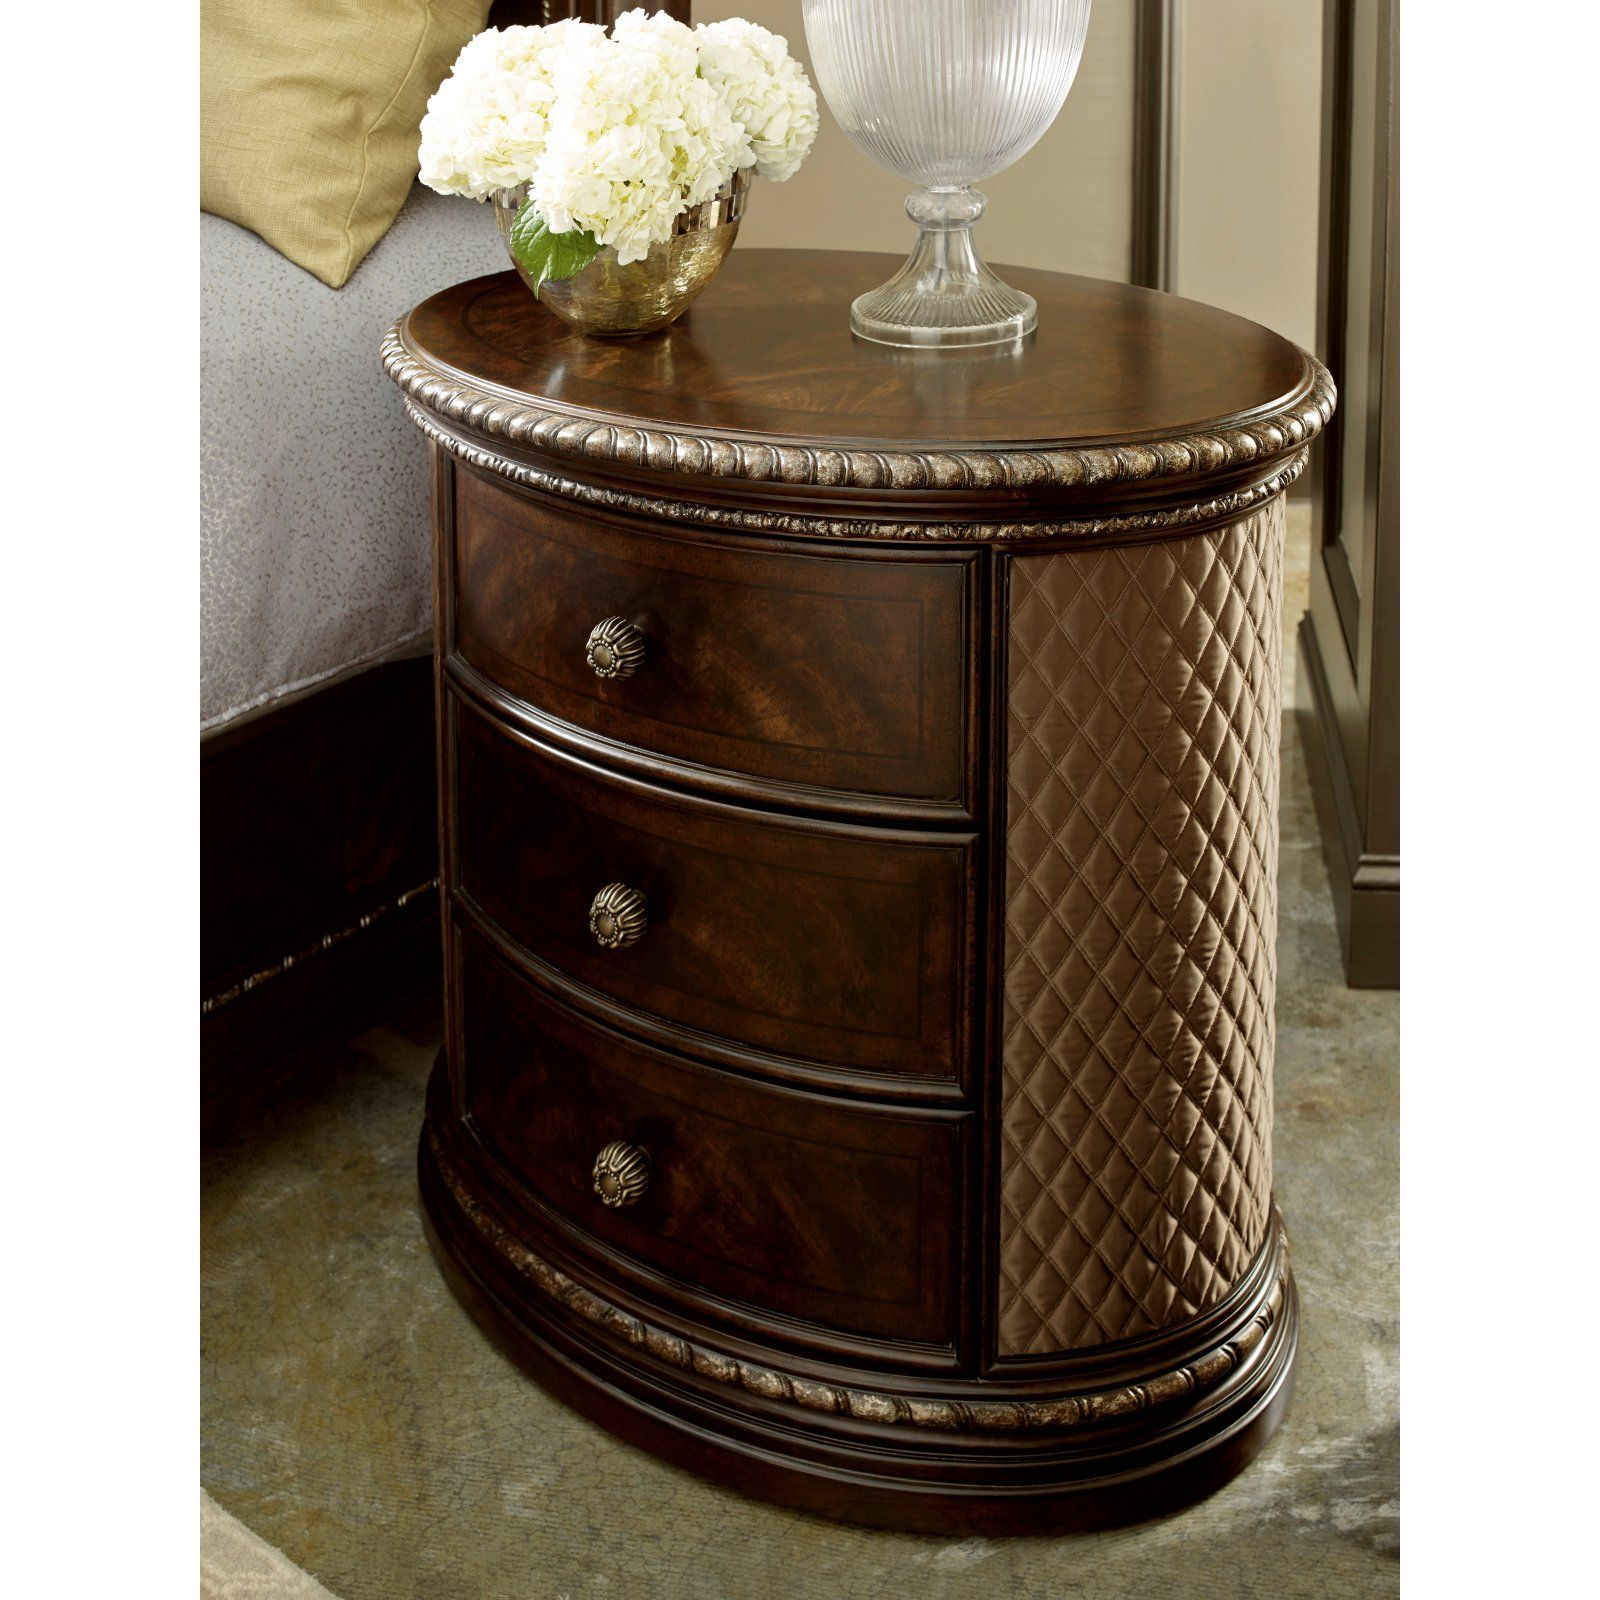 A R T Furniture Gables Oval Upholstered Sided 3 Drawer Nightstand